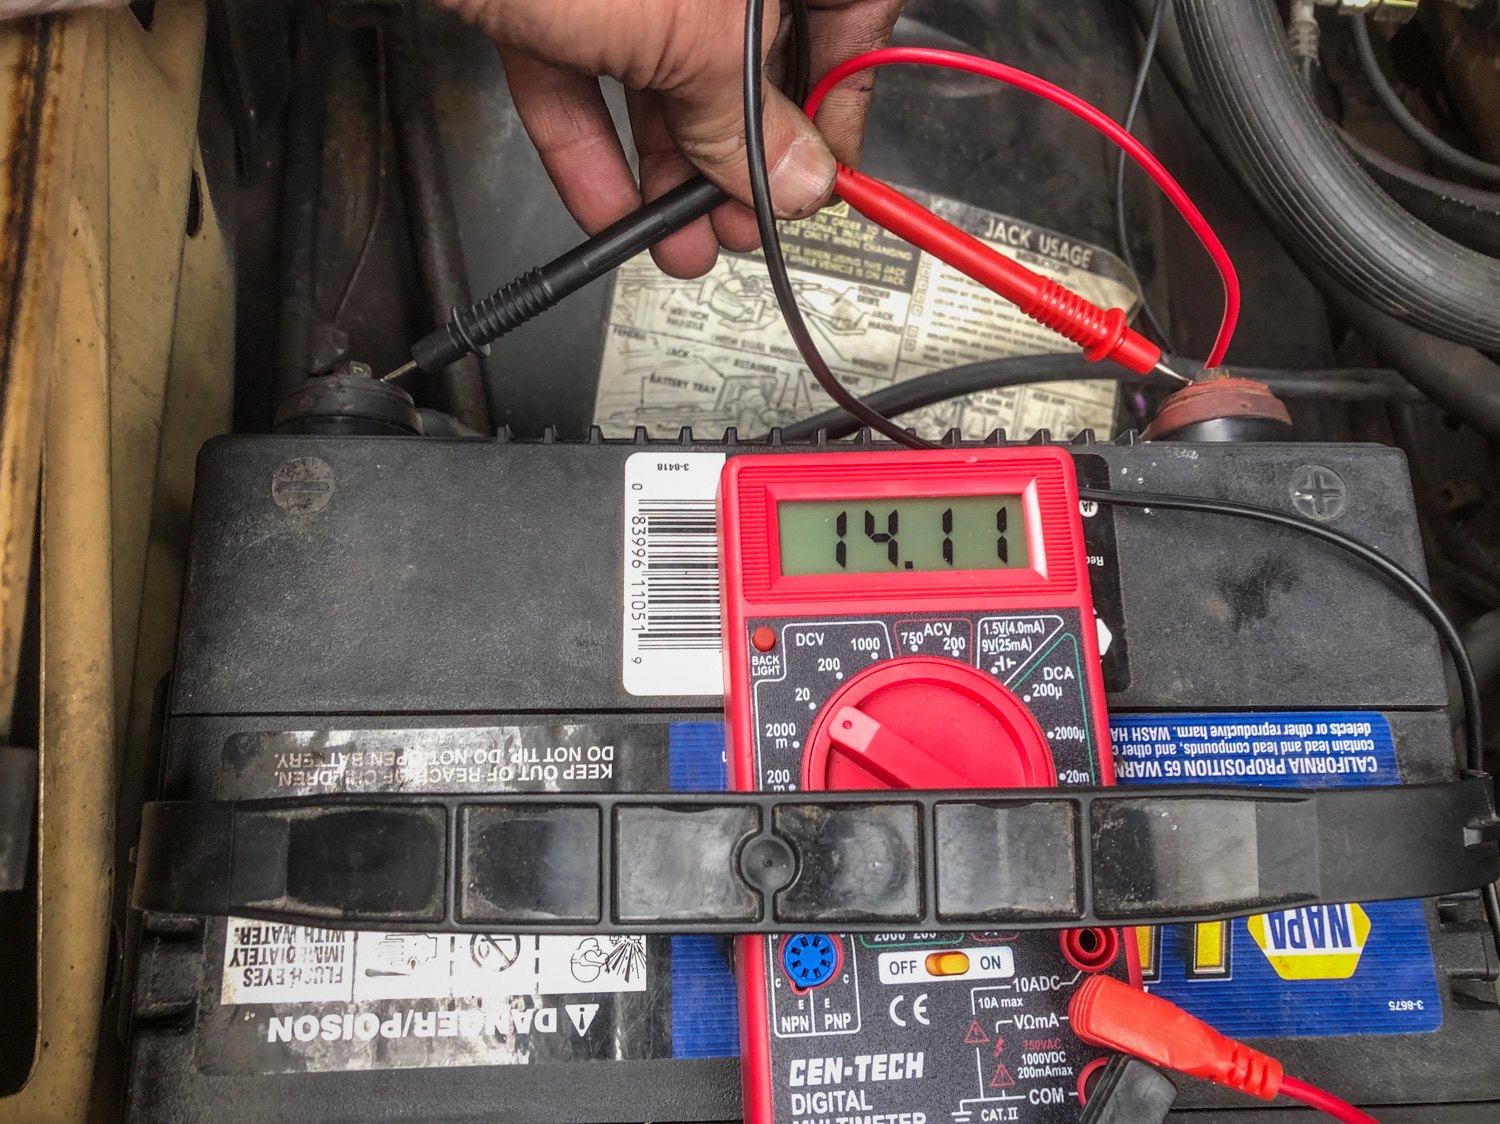 1977 Chevrolet Suburban multimeter battery